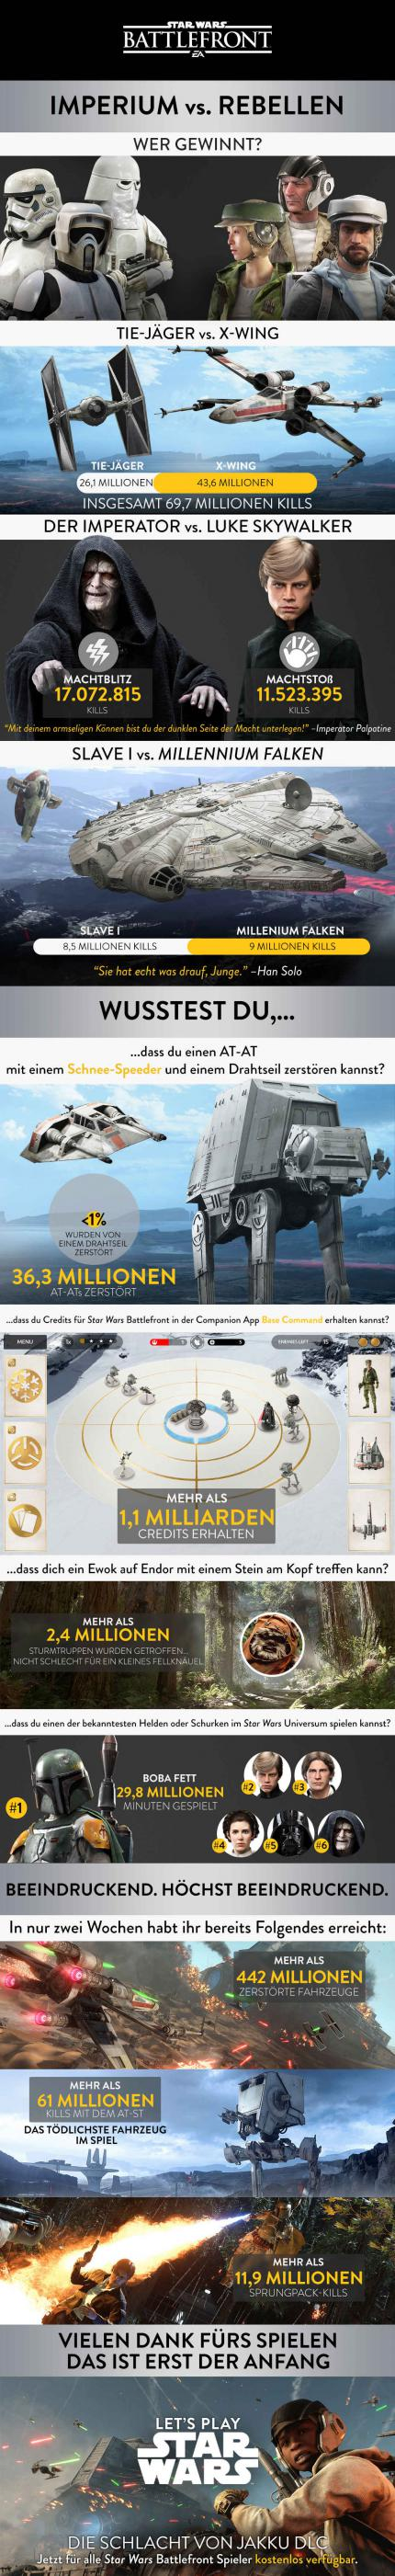 Star Wars: Battlefront - Dice veröffentlicht Statistikdaten zum Science-Fiction-Shooter. (7)